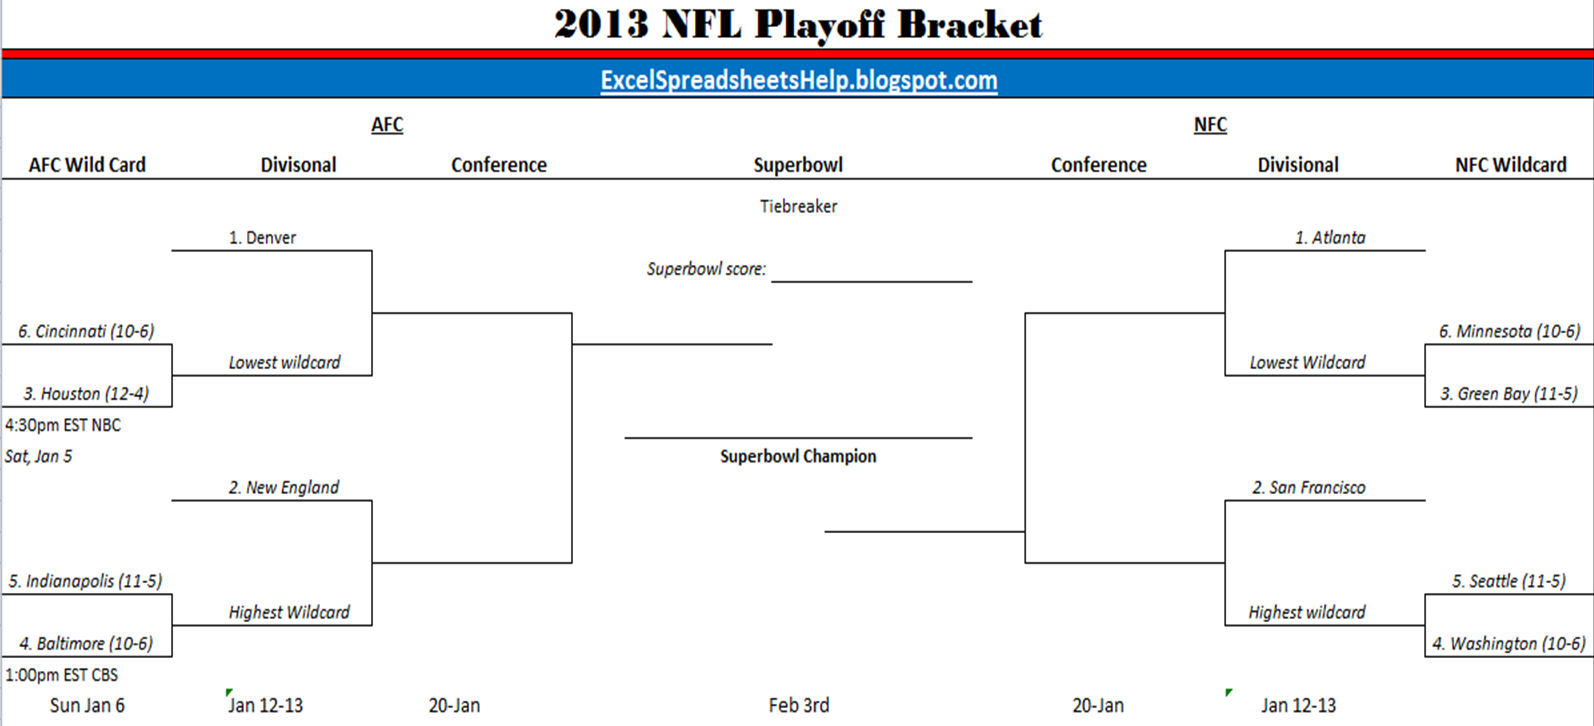 photo about Printable Nfl Playoffs Bracket identify Excel Spreadsheets Support: Printable 2013 NFL Playoff Bracket